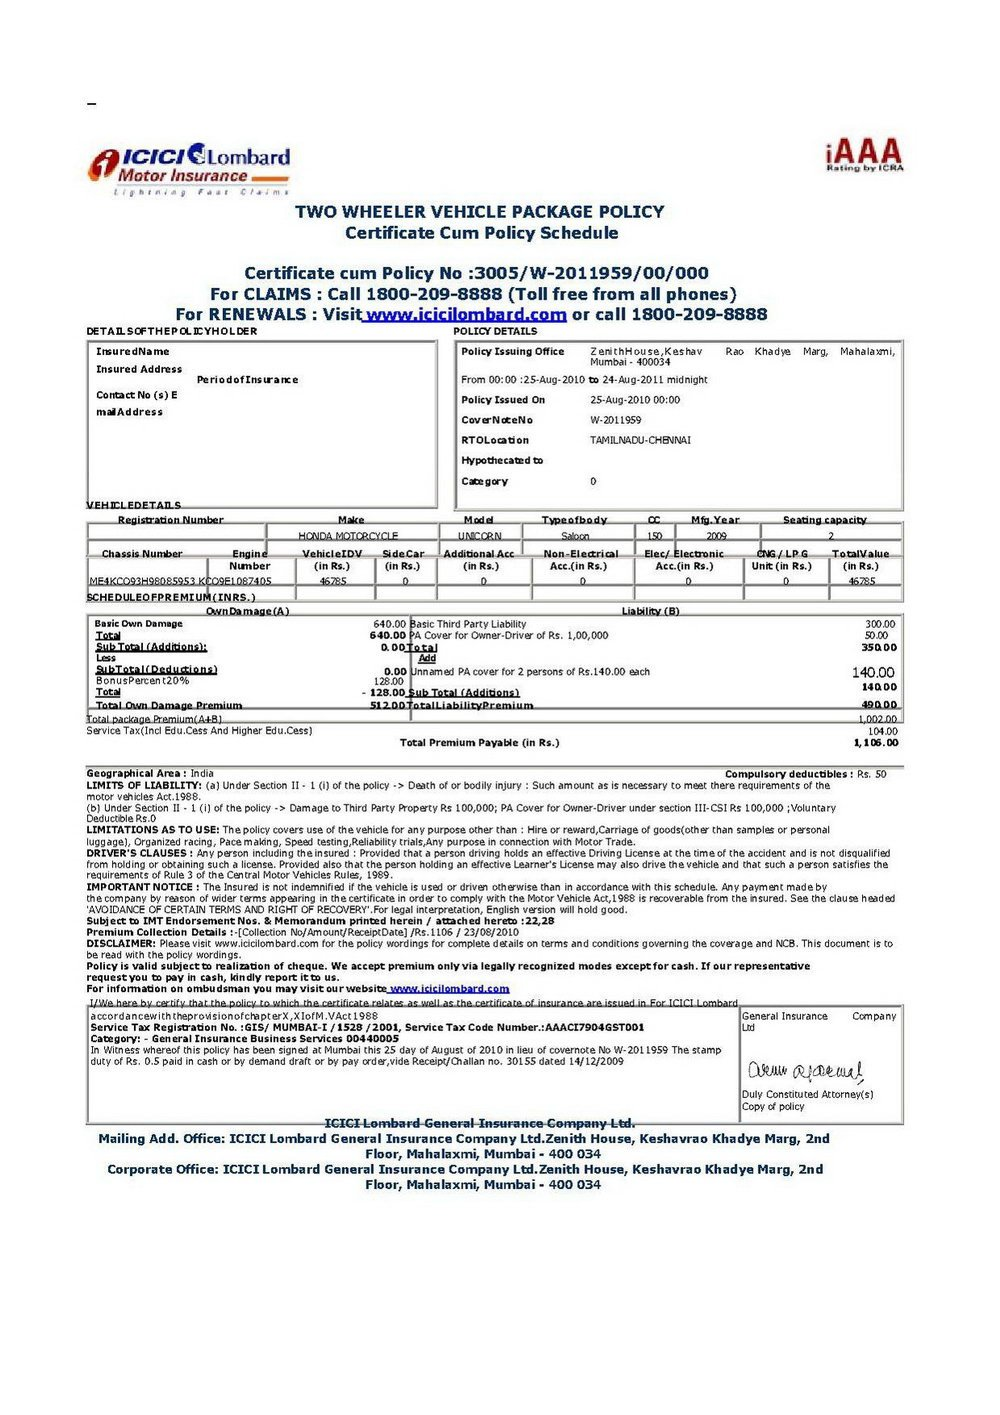 Db450 form Part C Nys Disability form Db120 1 forms 4451